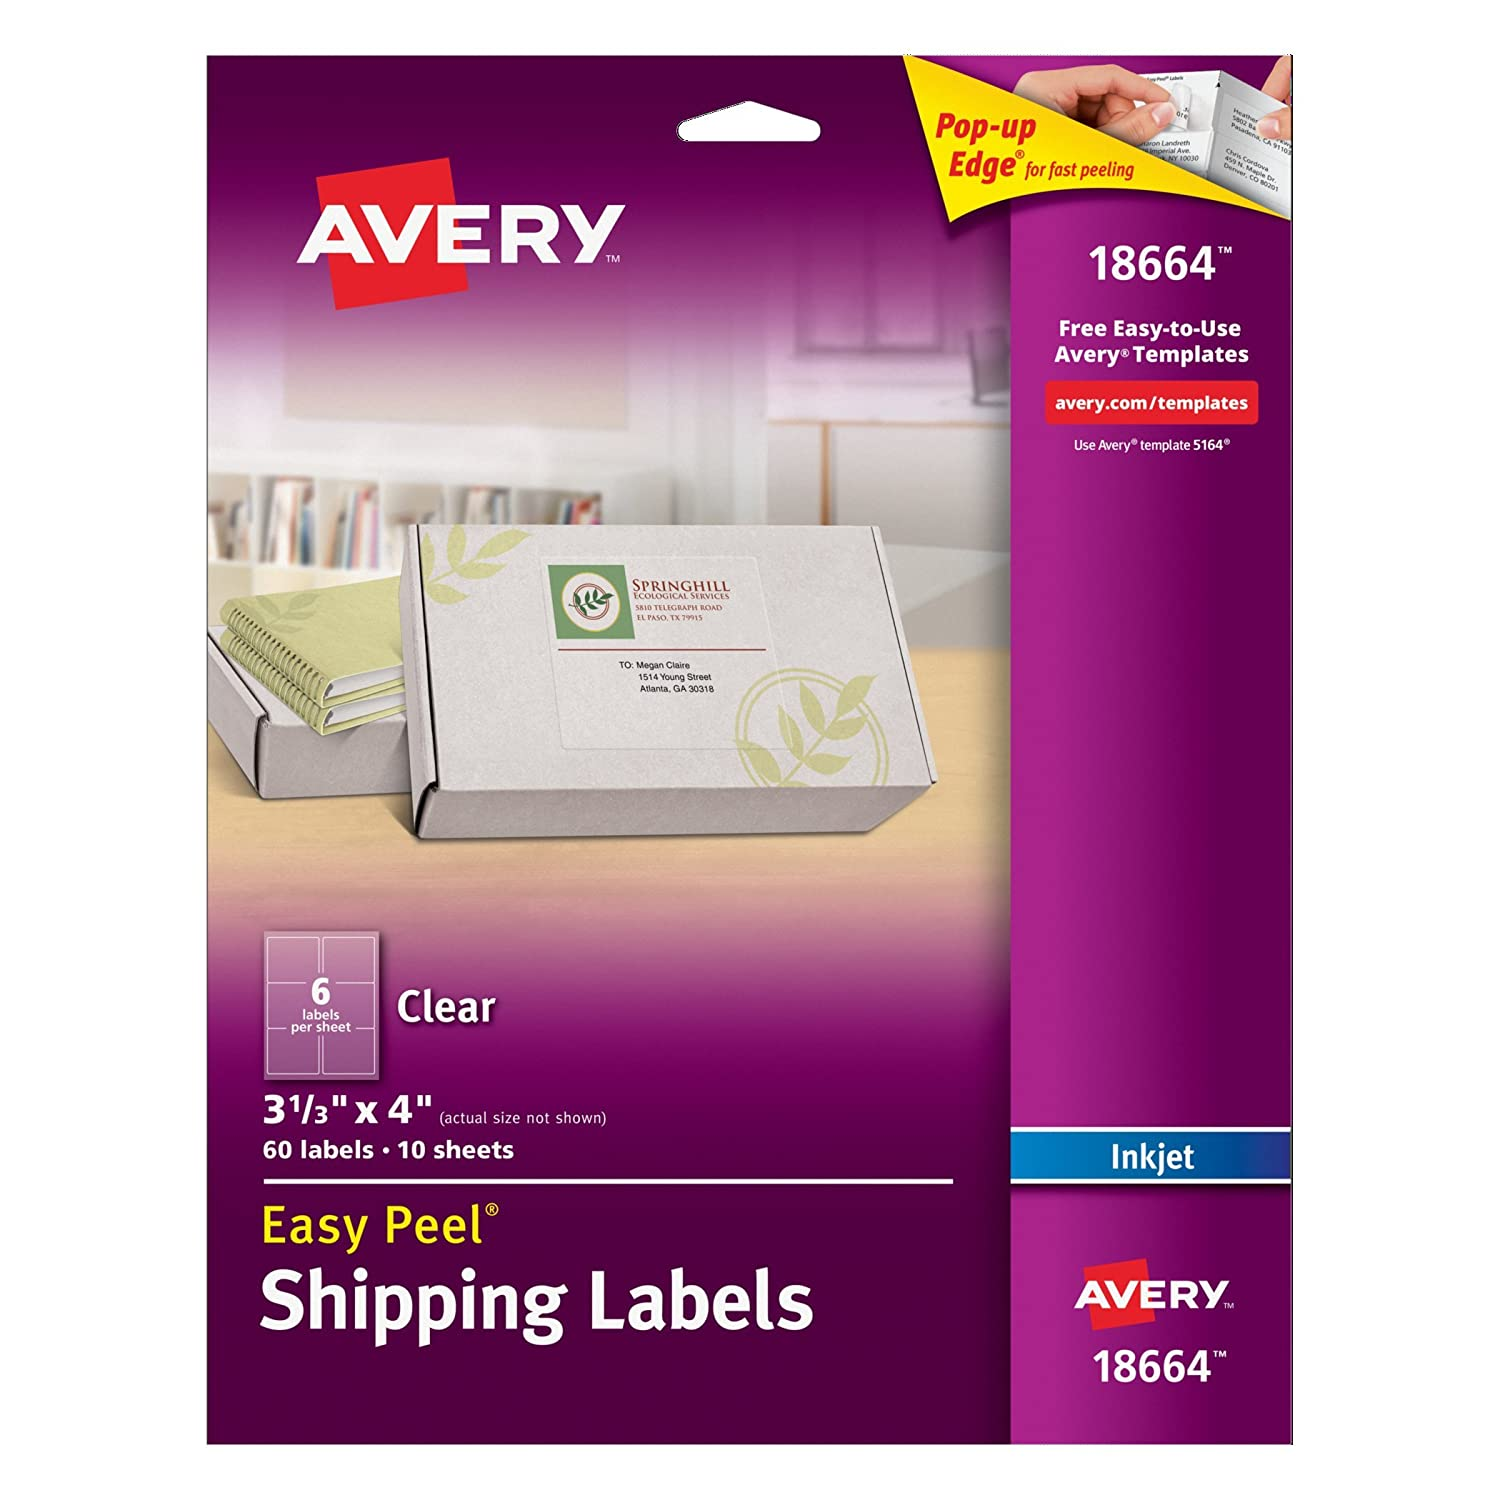 Amazon Avery Clear Easy Peel Shipping Labels for Inkjet – Large Mailing Labels